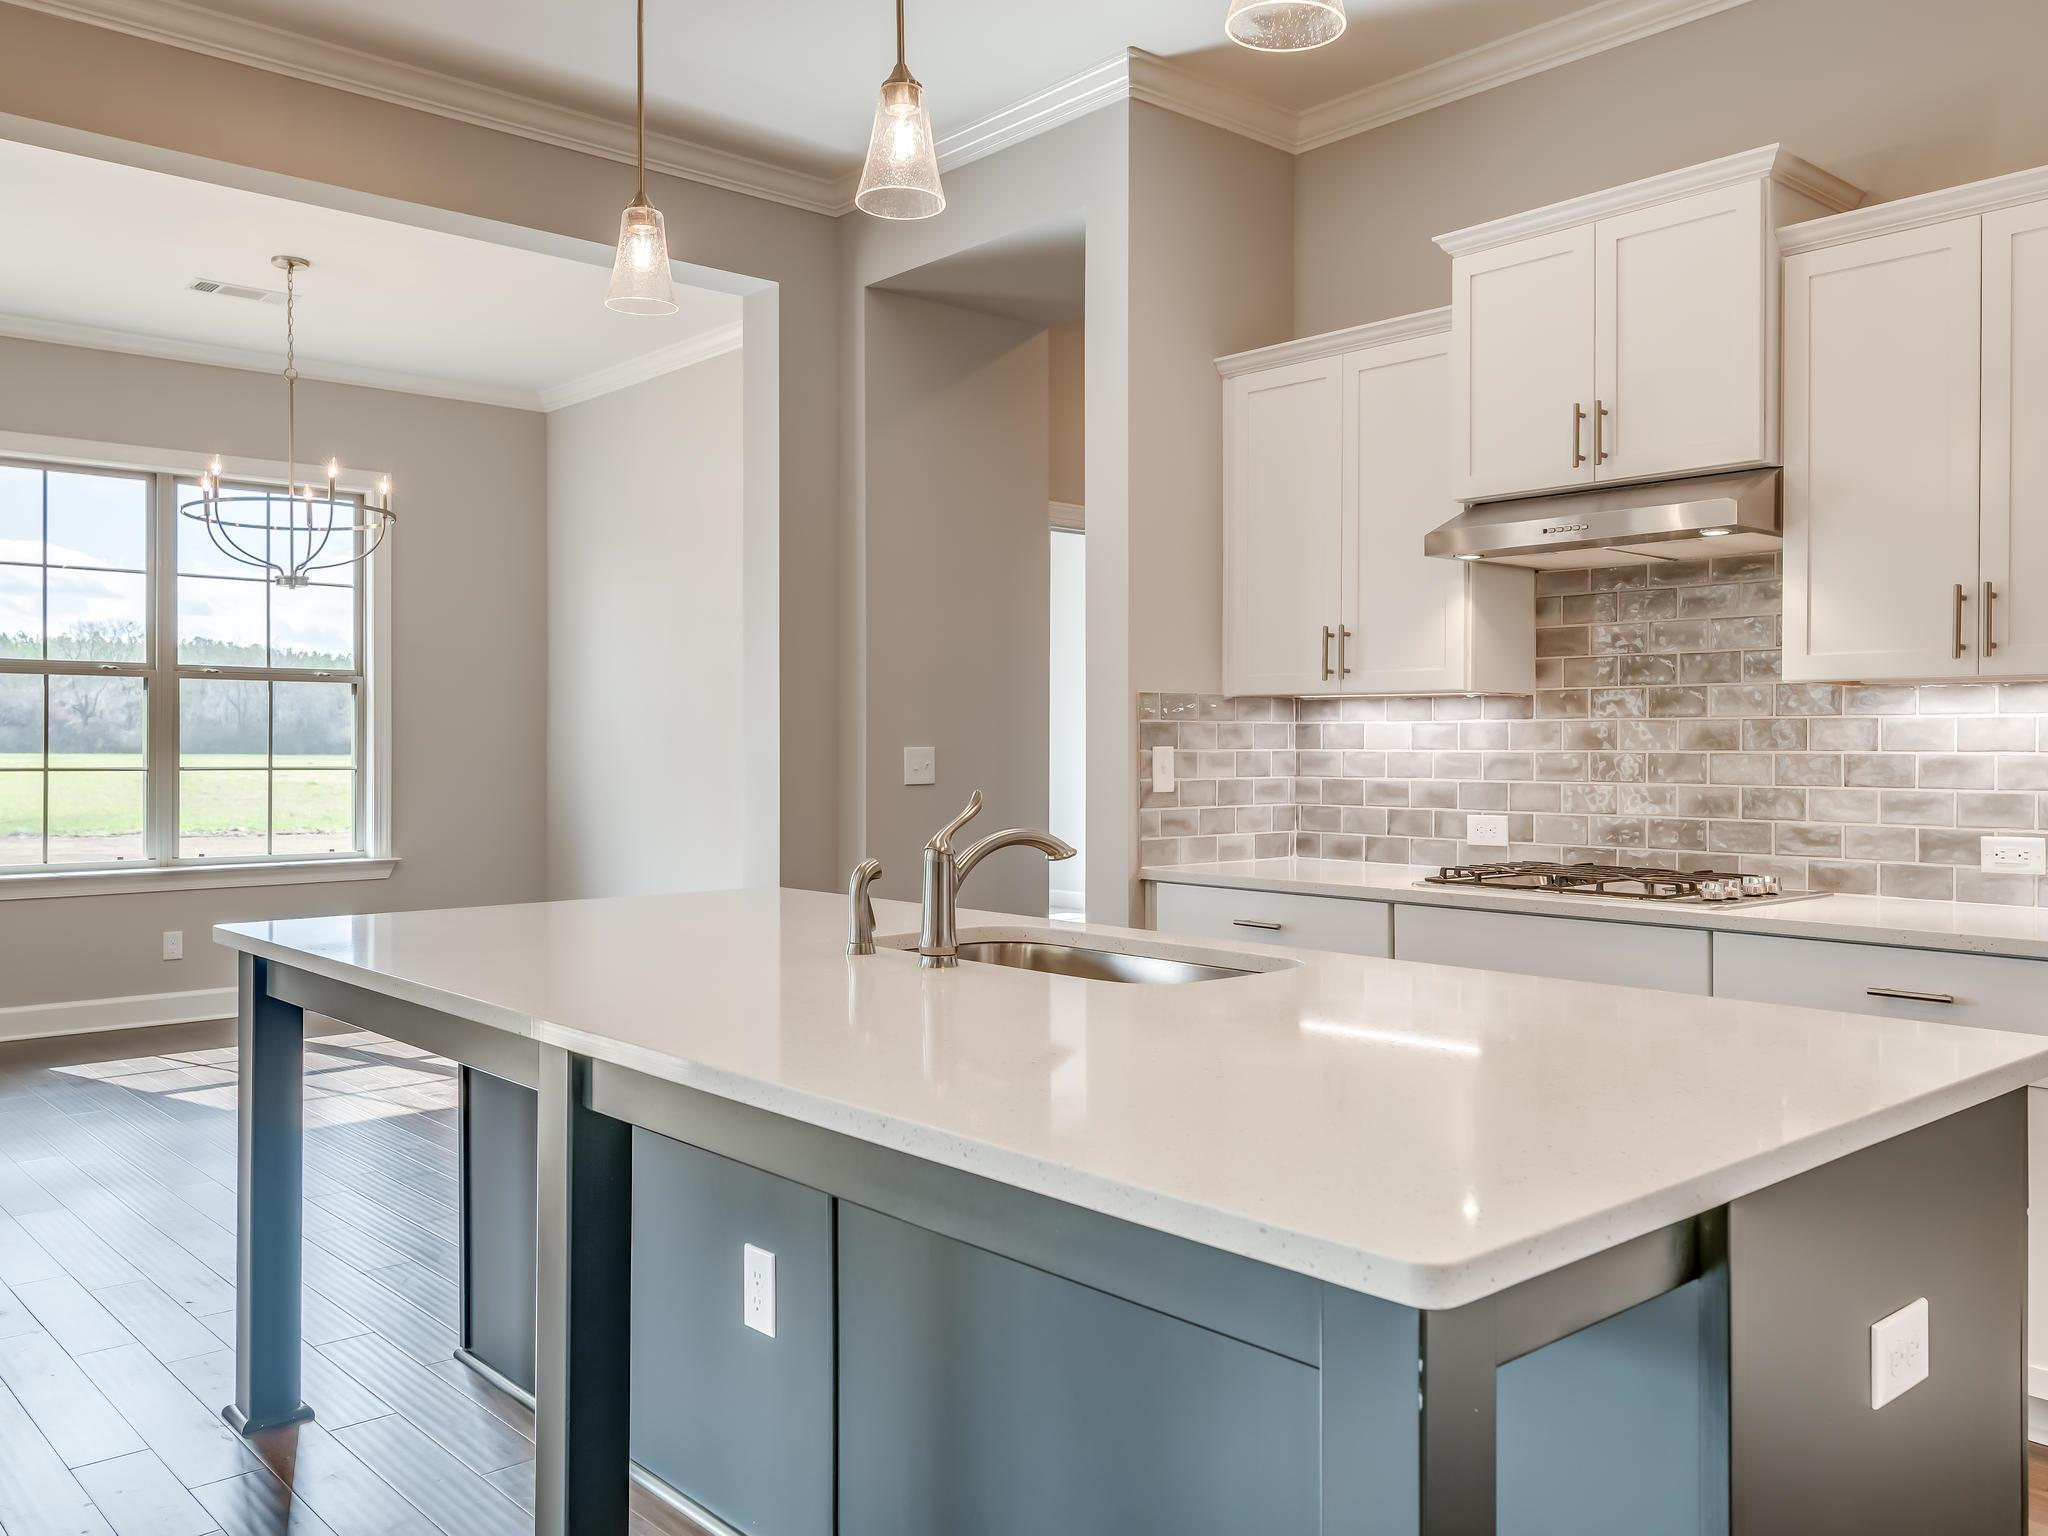 Kitchen featured in The Chinquapin Oak By Lowder New Homes in Montgomery, AL